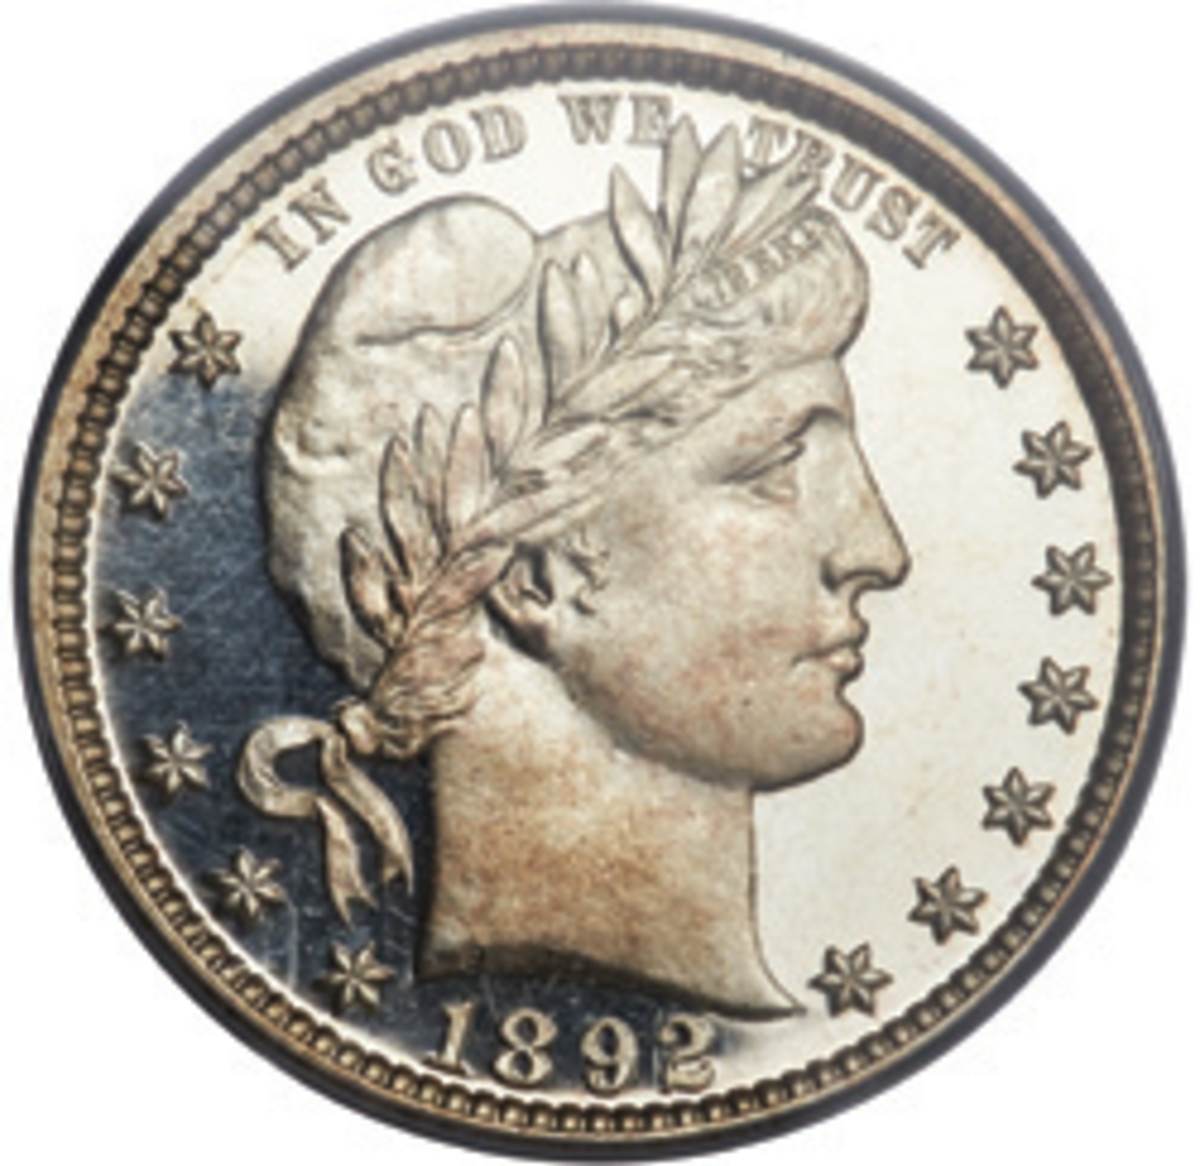 In 1892, the Barber design was unveiled on U.S. dimes, quarters, and half dollars, and it stayed there until 1916.